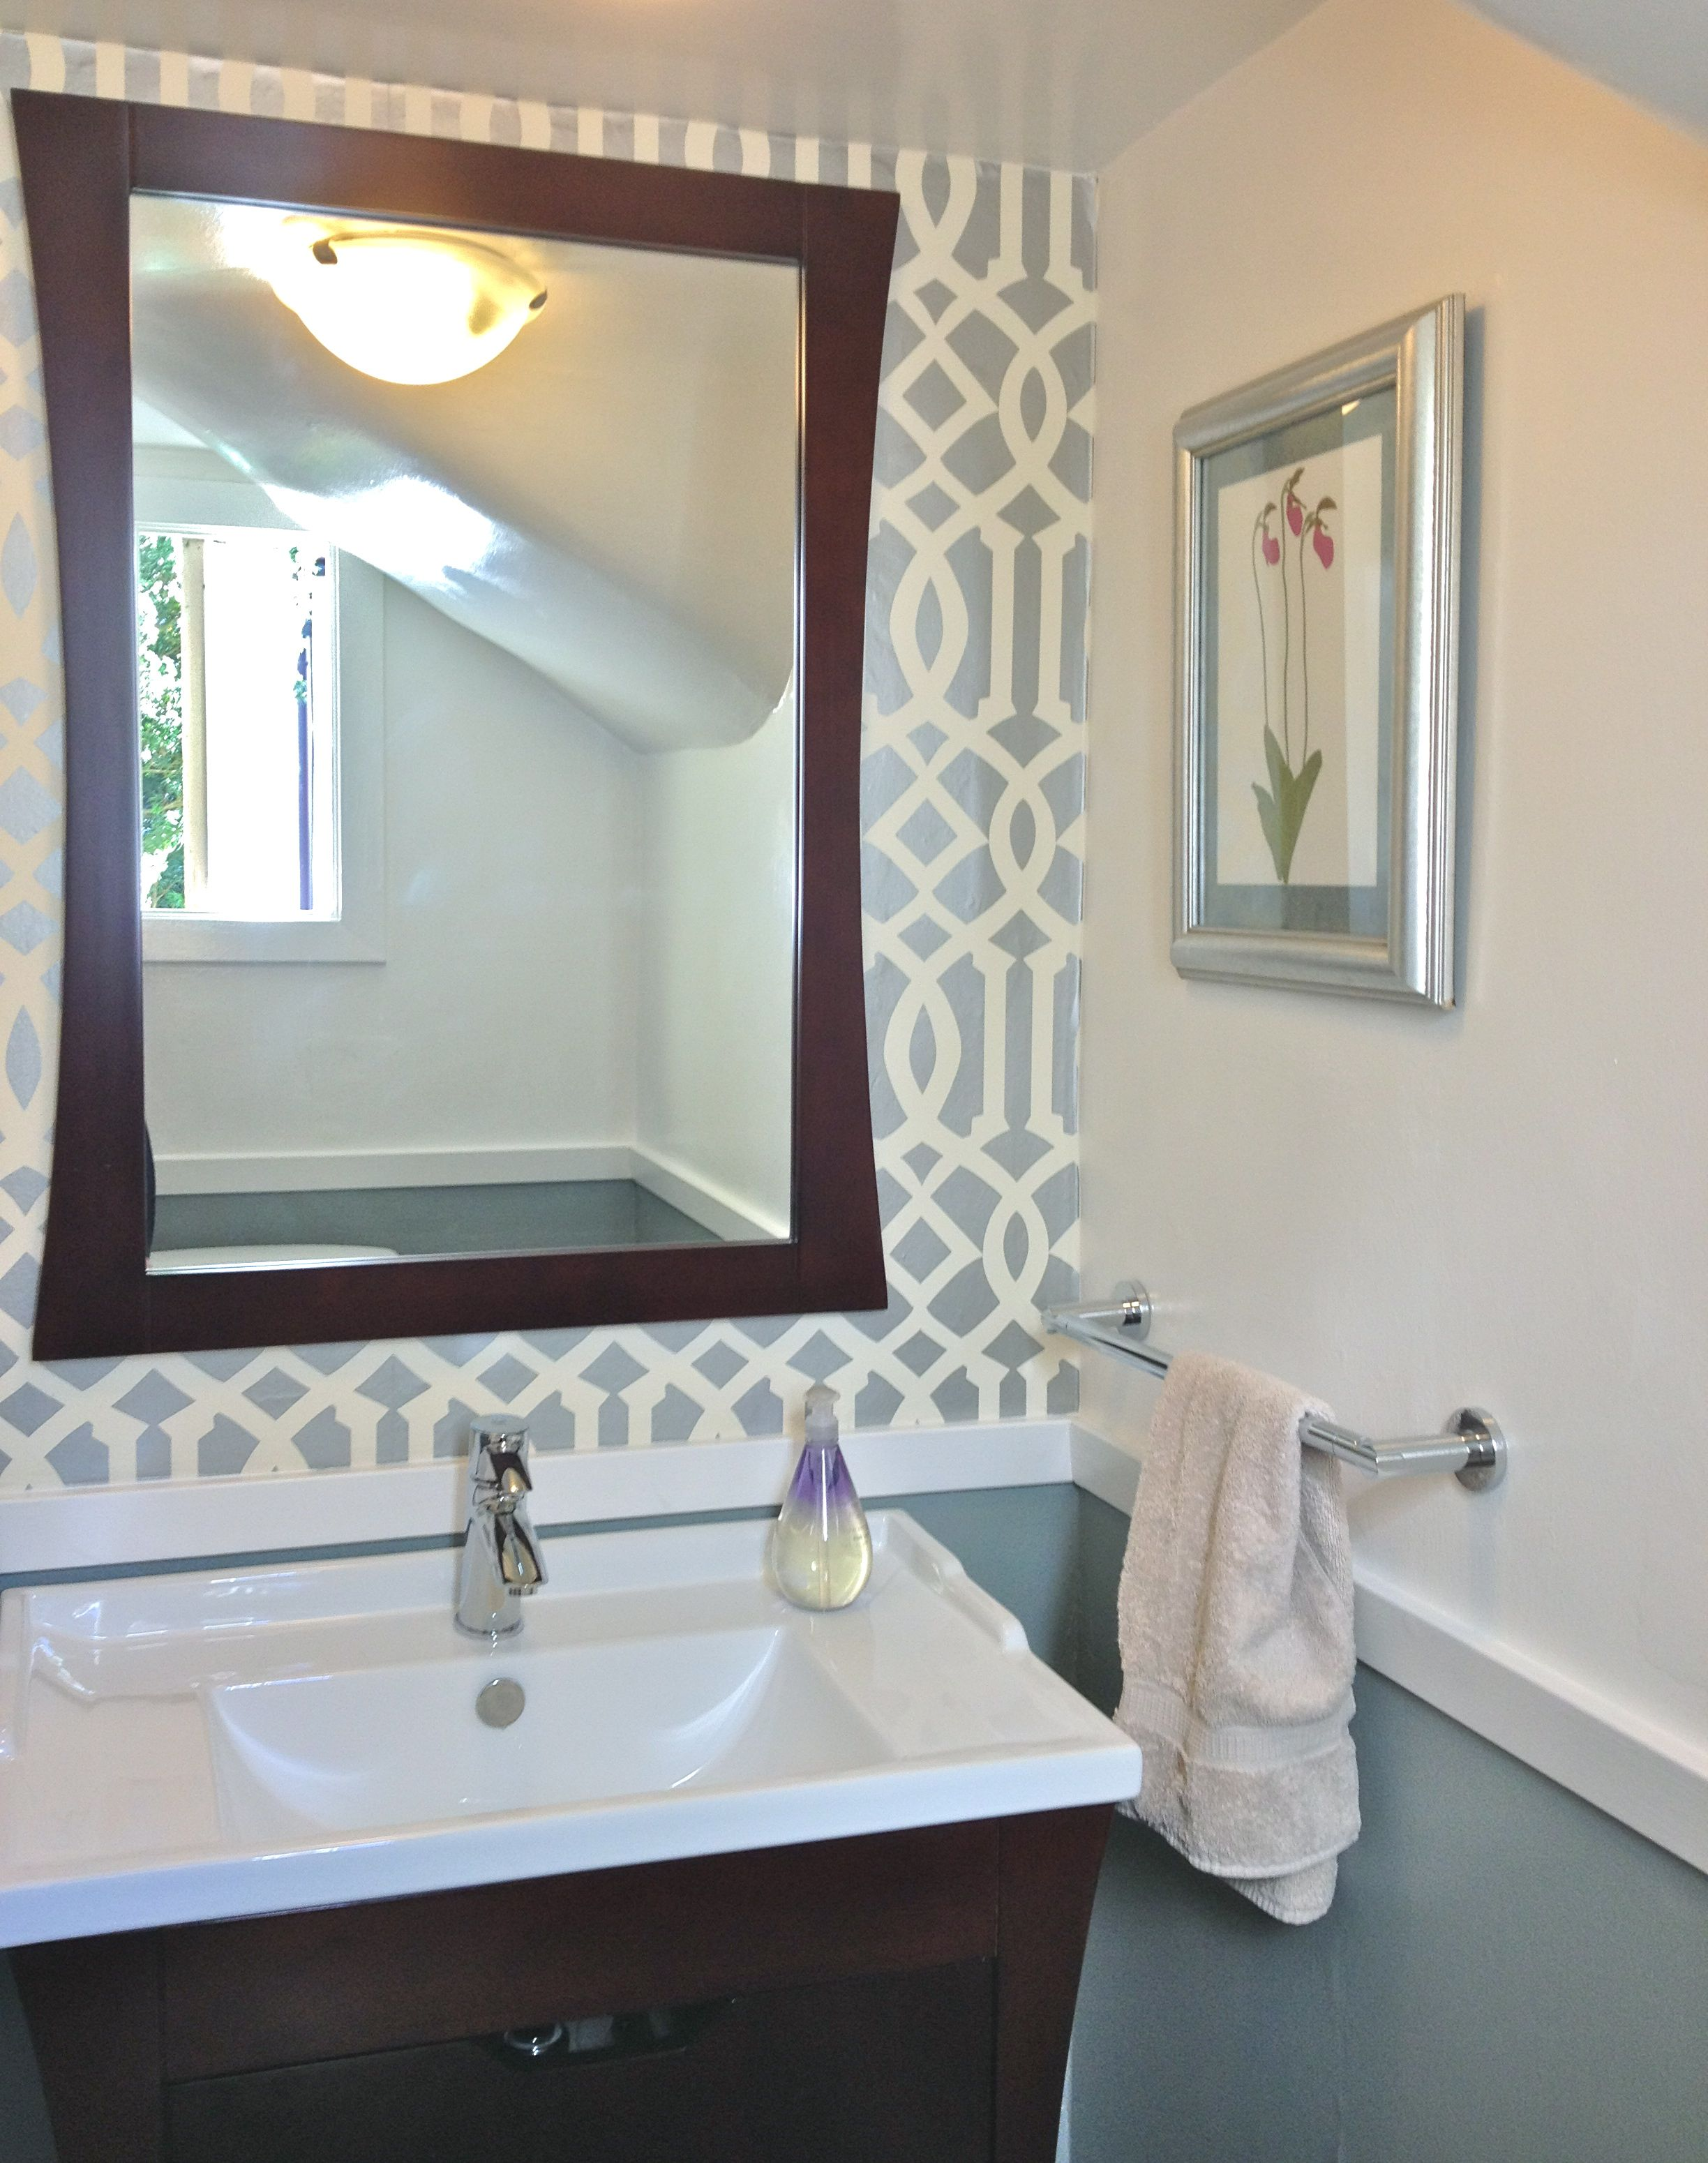 Powder Room by Jewels at Home 1 2448x3100